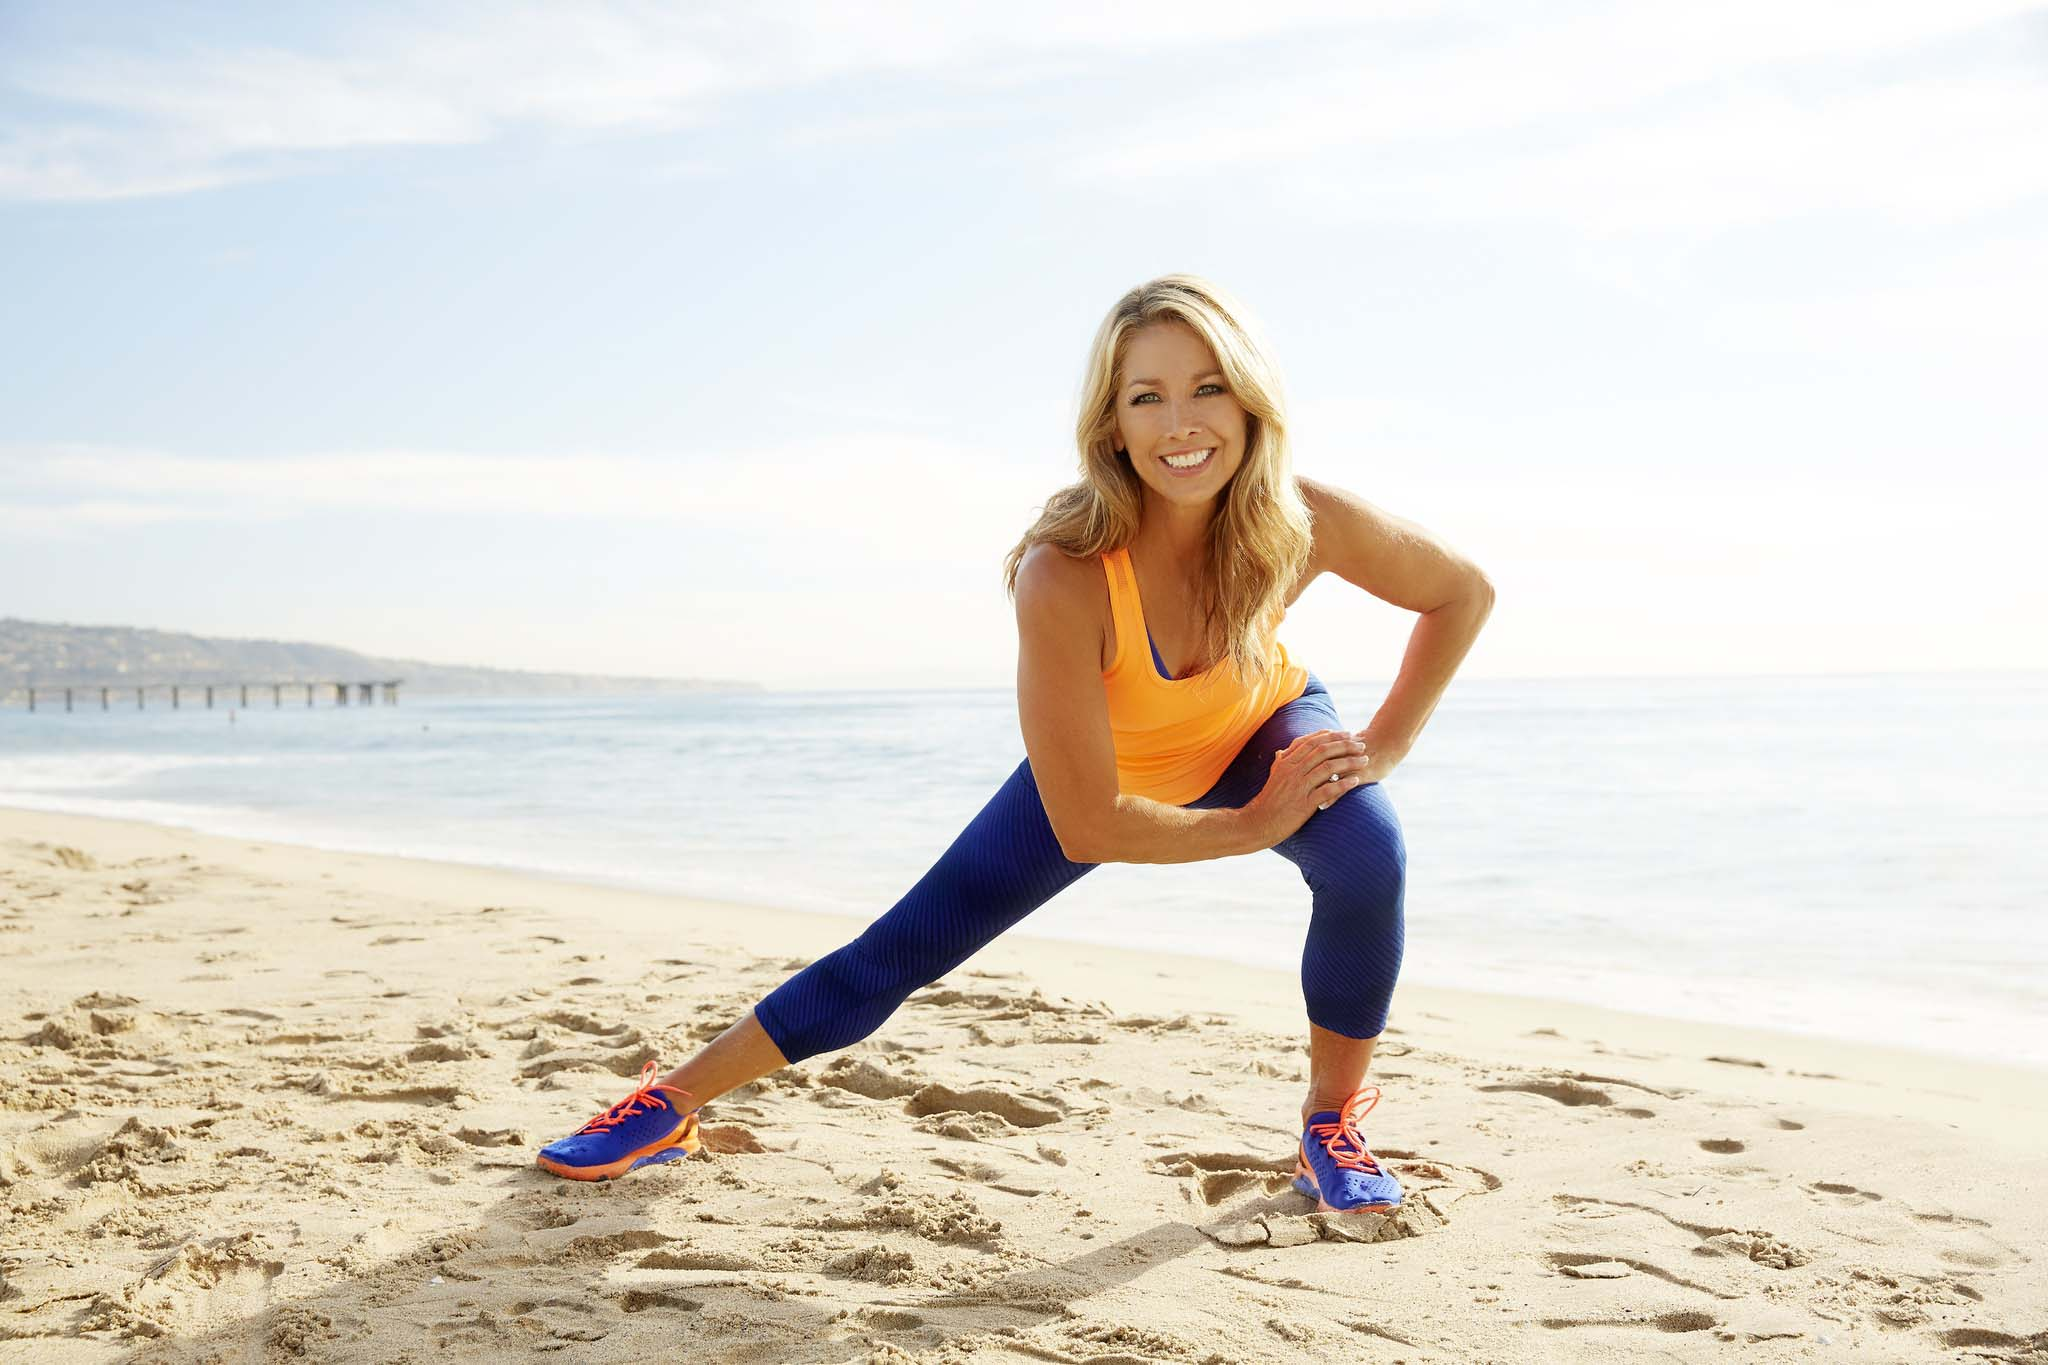 Denise's trademark zest for life, positive outlook, and can-do attitude have endeared her to millions of fans and earned her the reputation as America's favorite fitness expert.